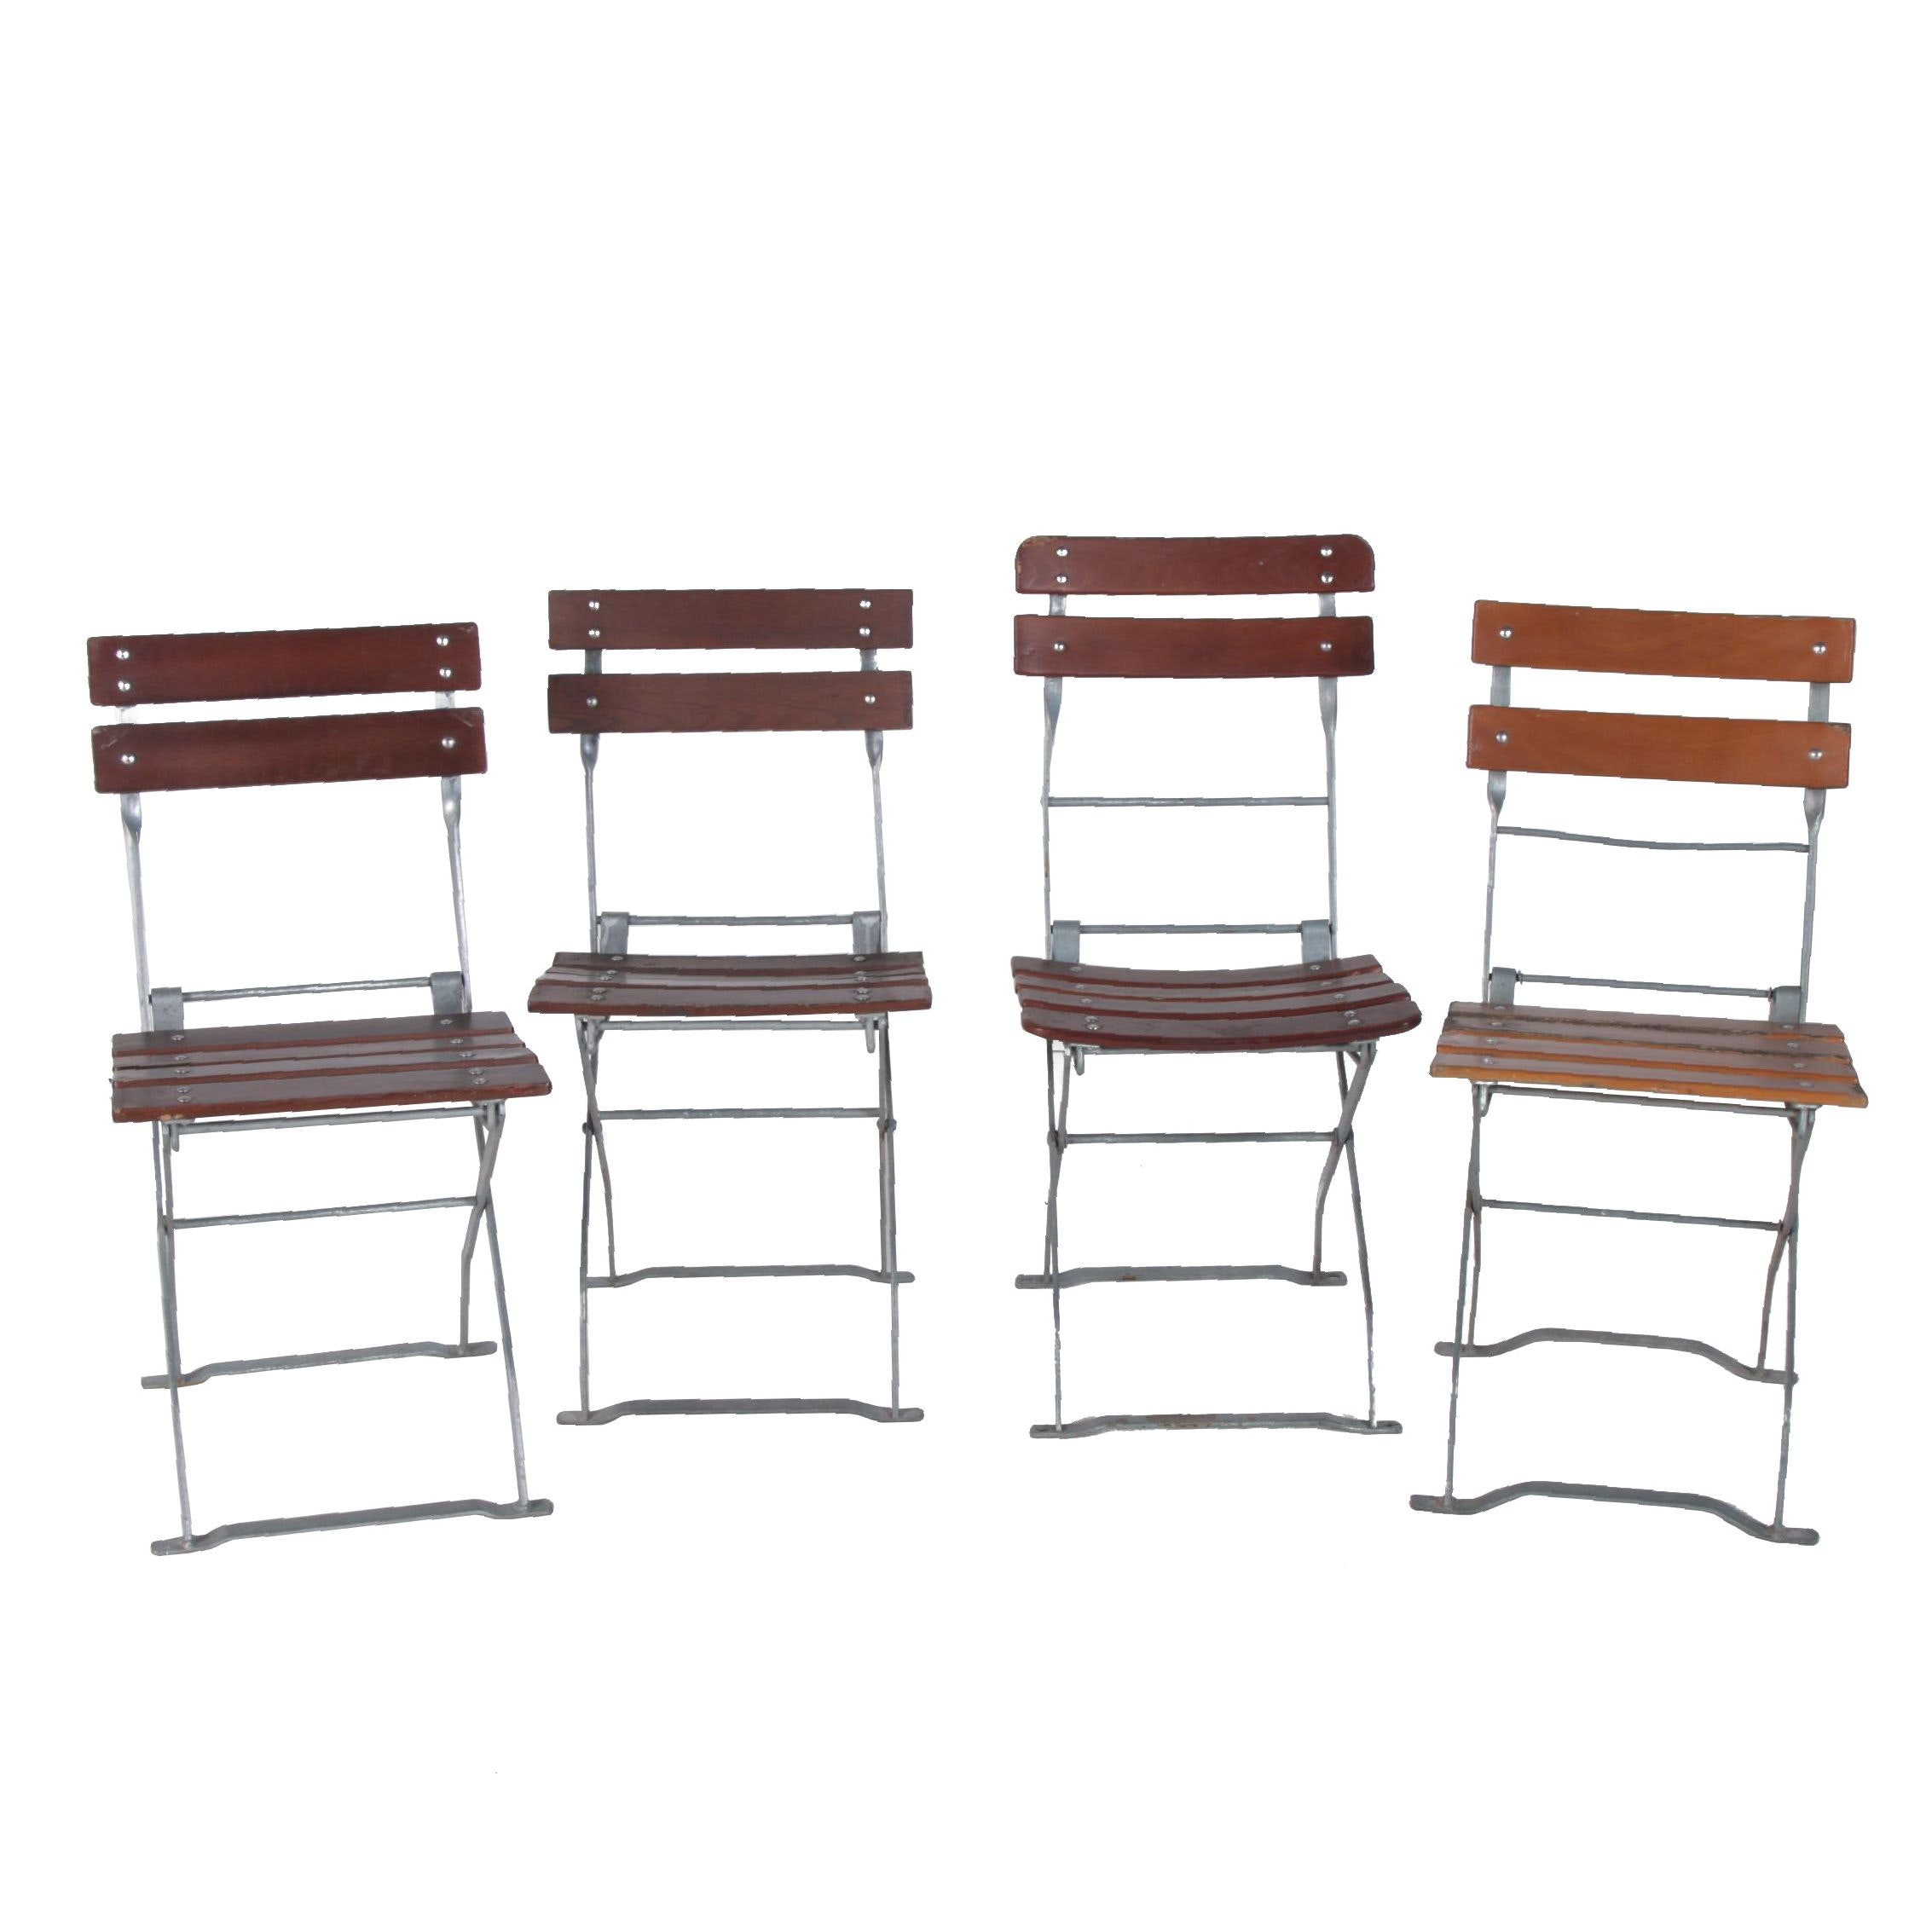 European Bistro Style Wood and Metal Folding Chairs, Late 20th Century